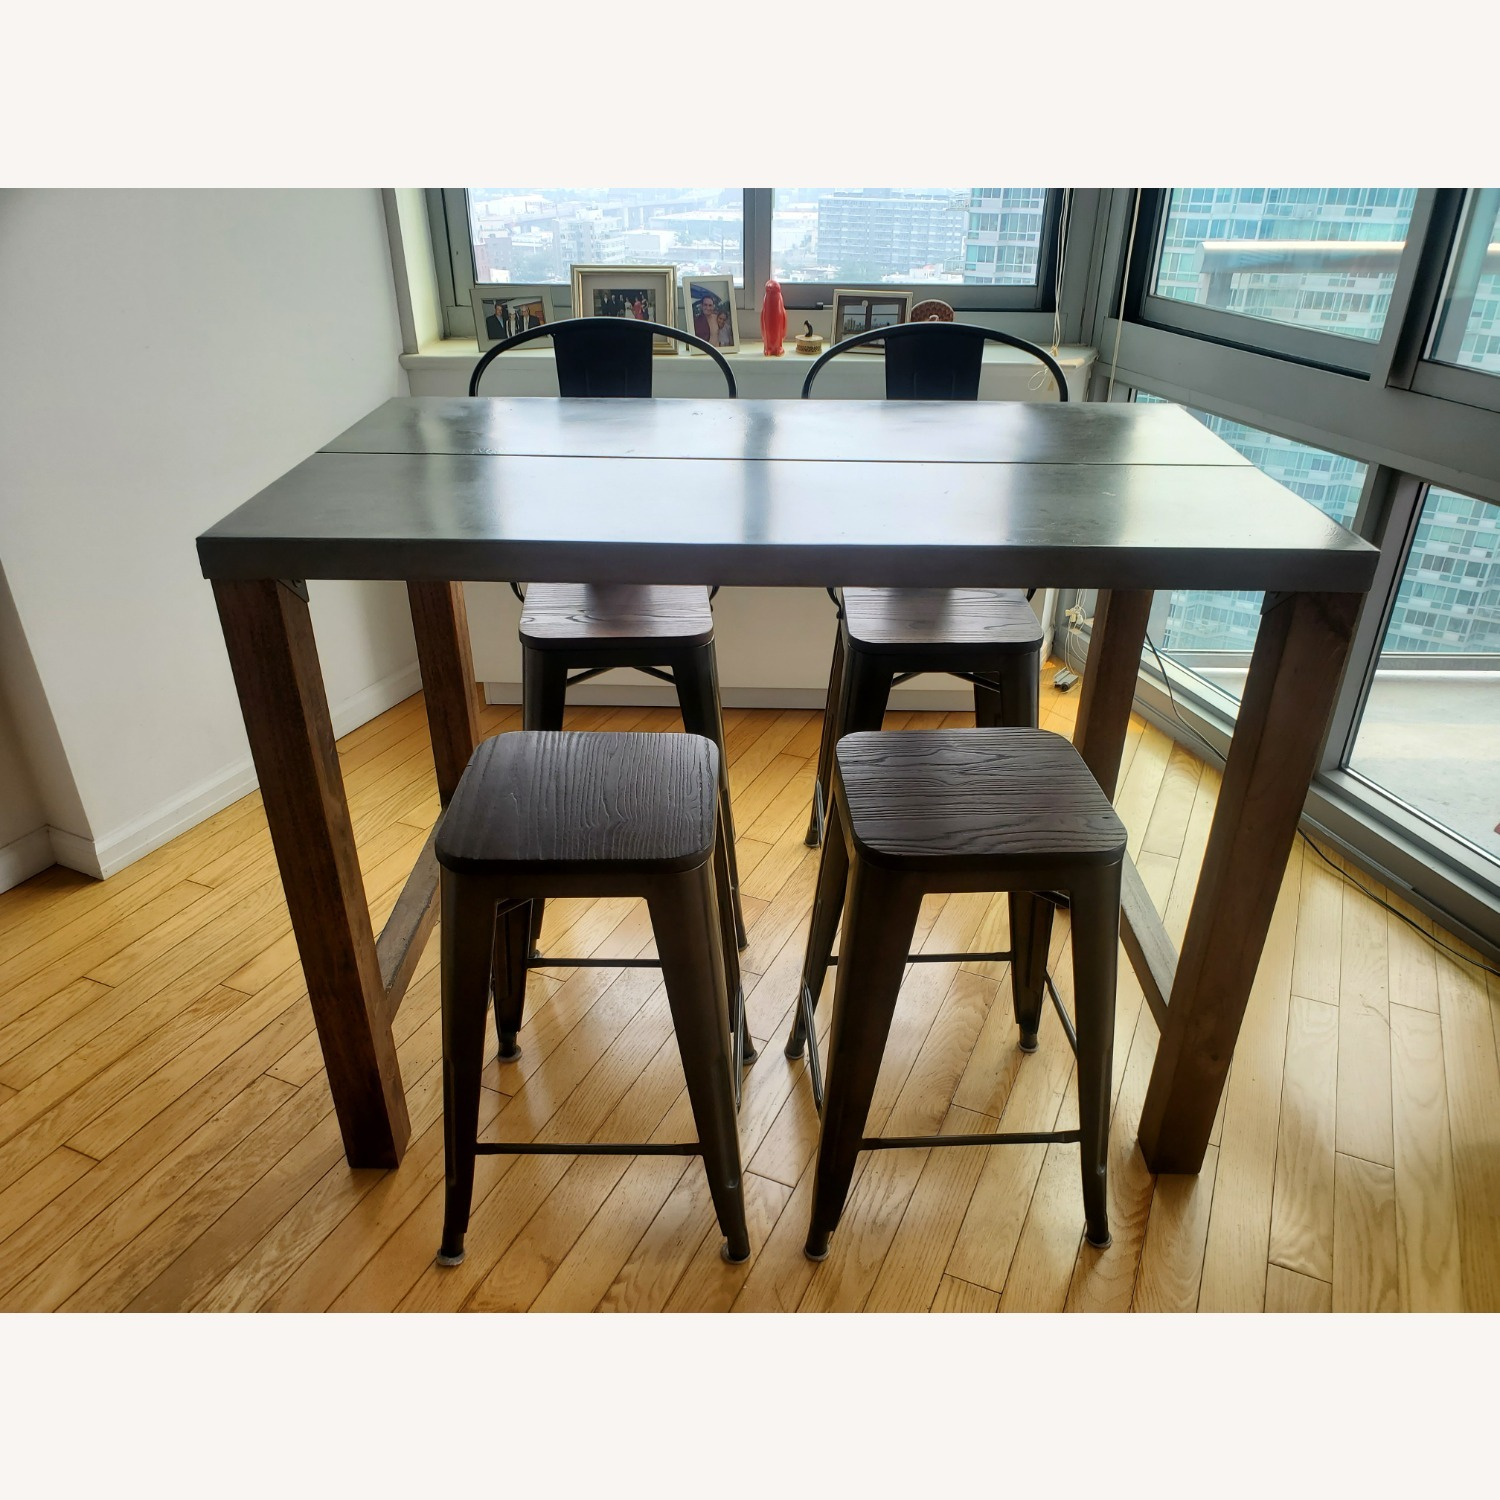 CB2 Industrial Dining Table & Chairs - image-2